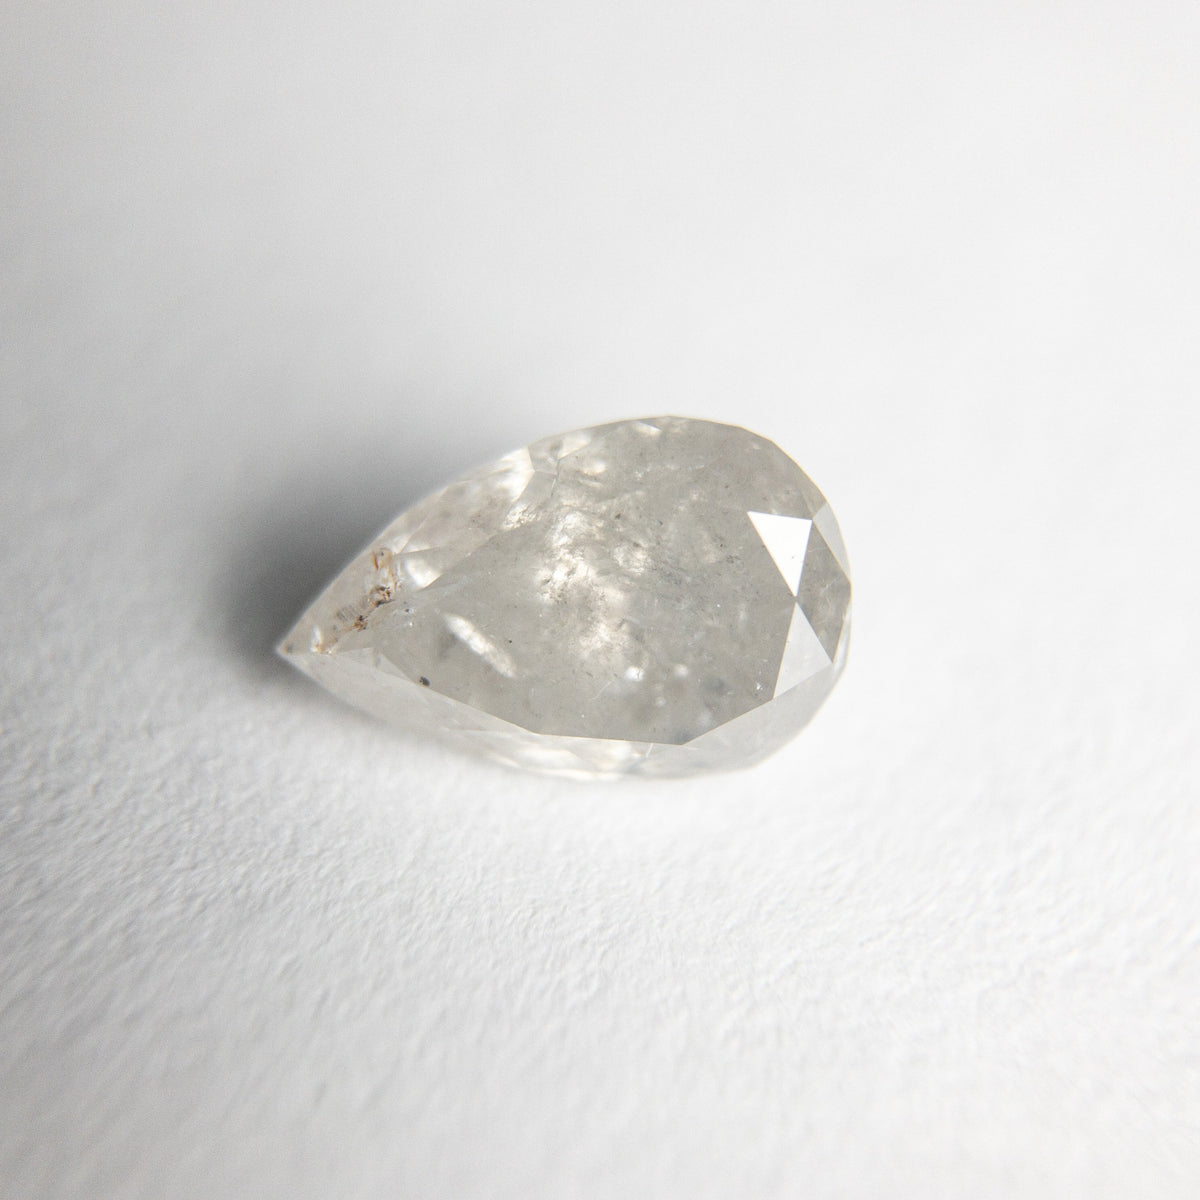 0.88ct 7.67x4.95x3.48mm Pear Brilliant 18386-13